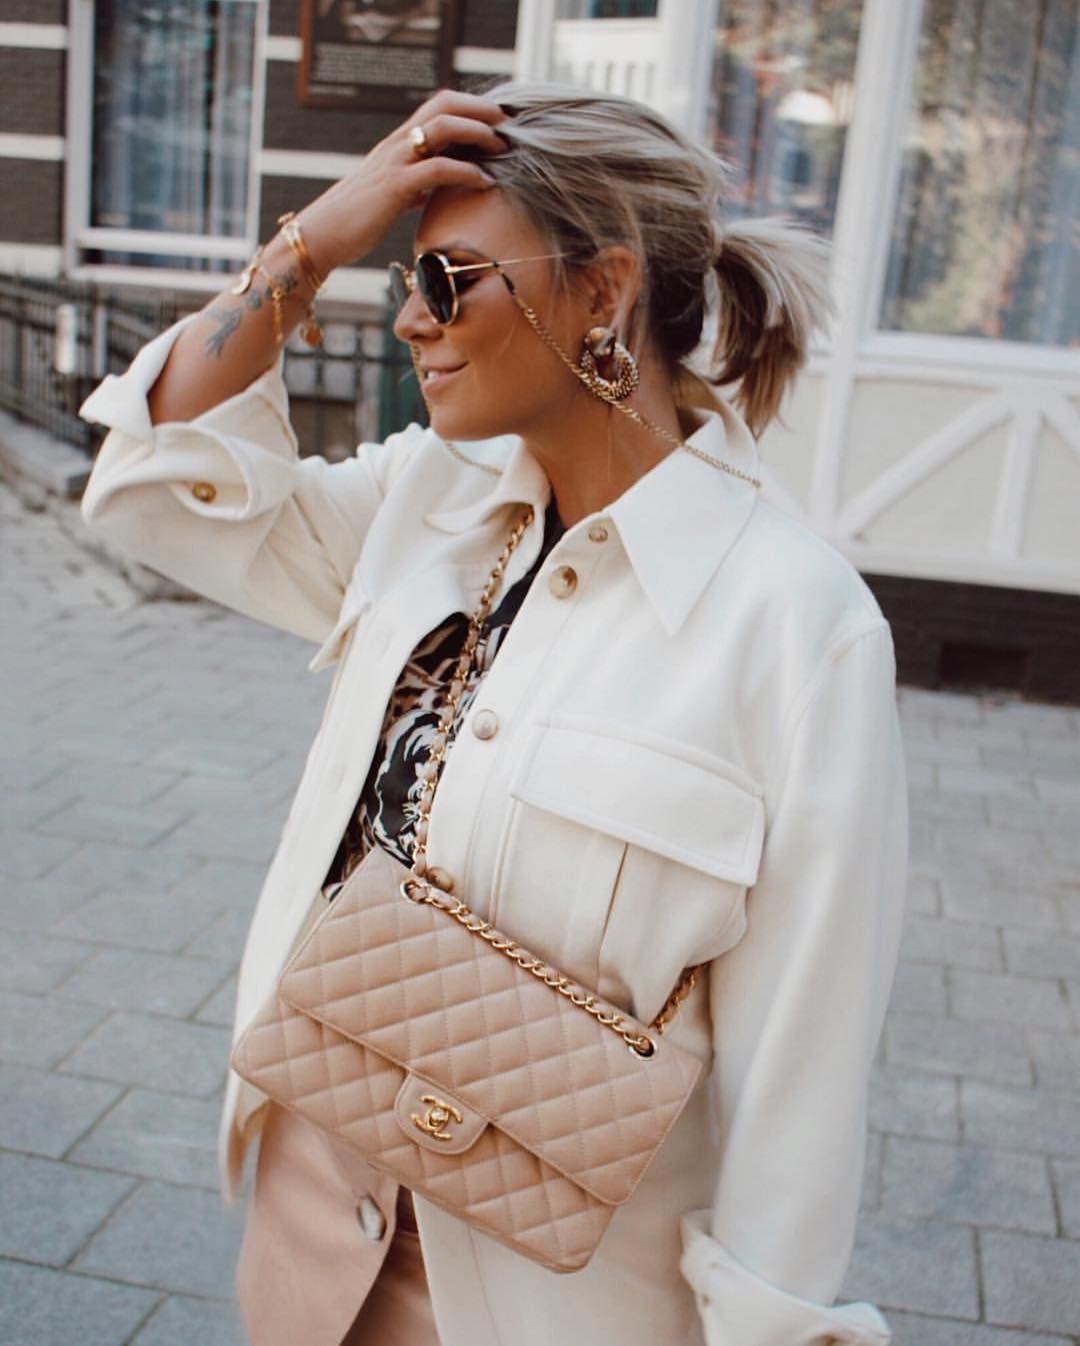 Fall Basics: Oversized White Jacket And Mini Skirt 2019